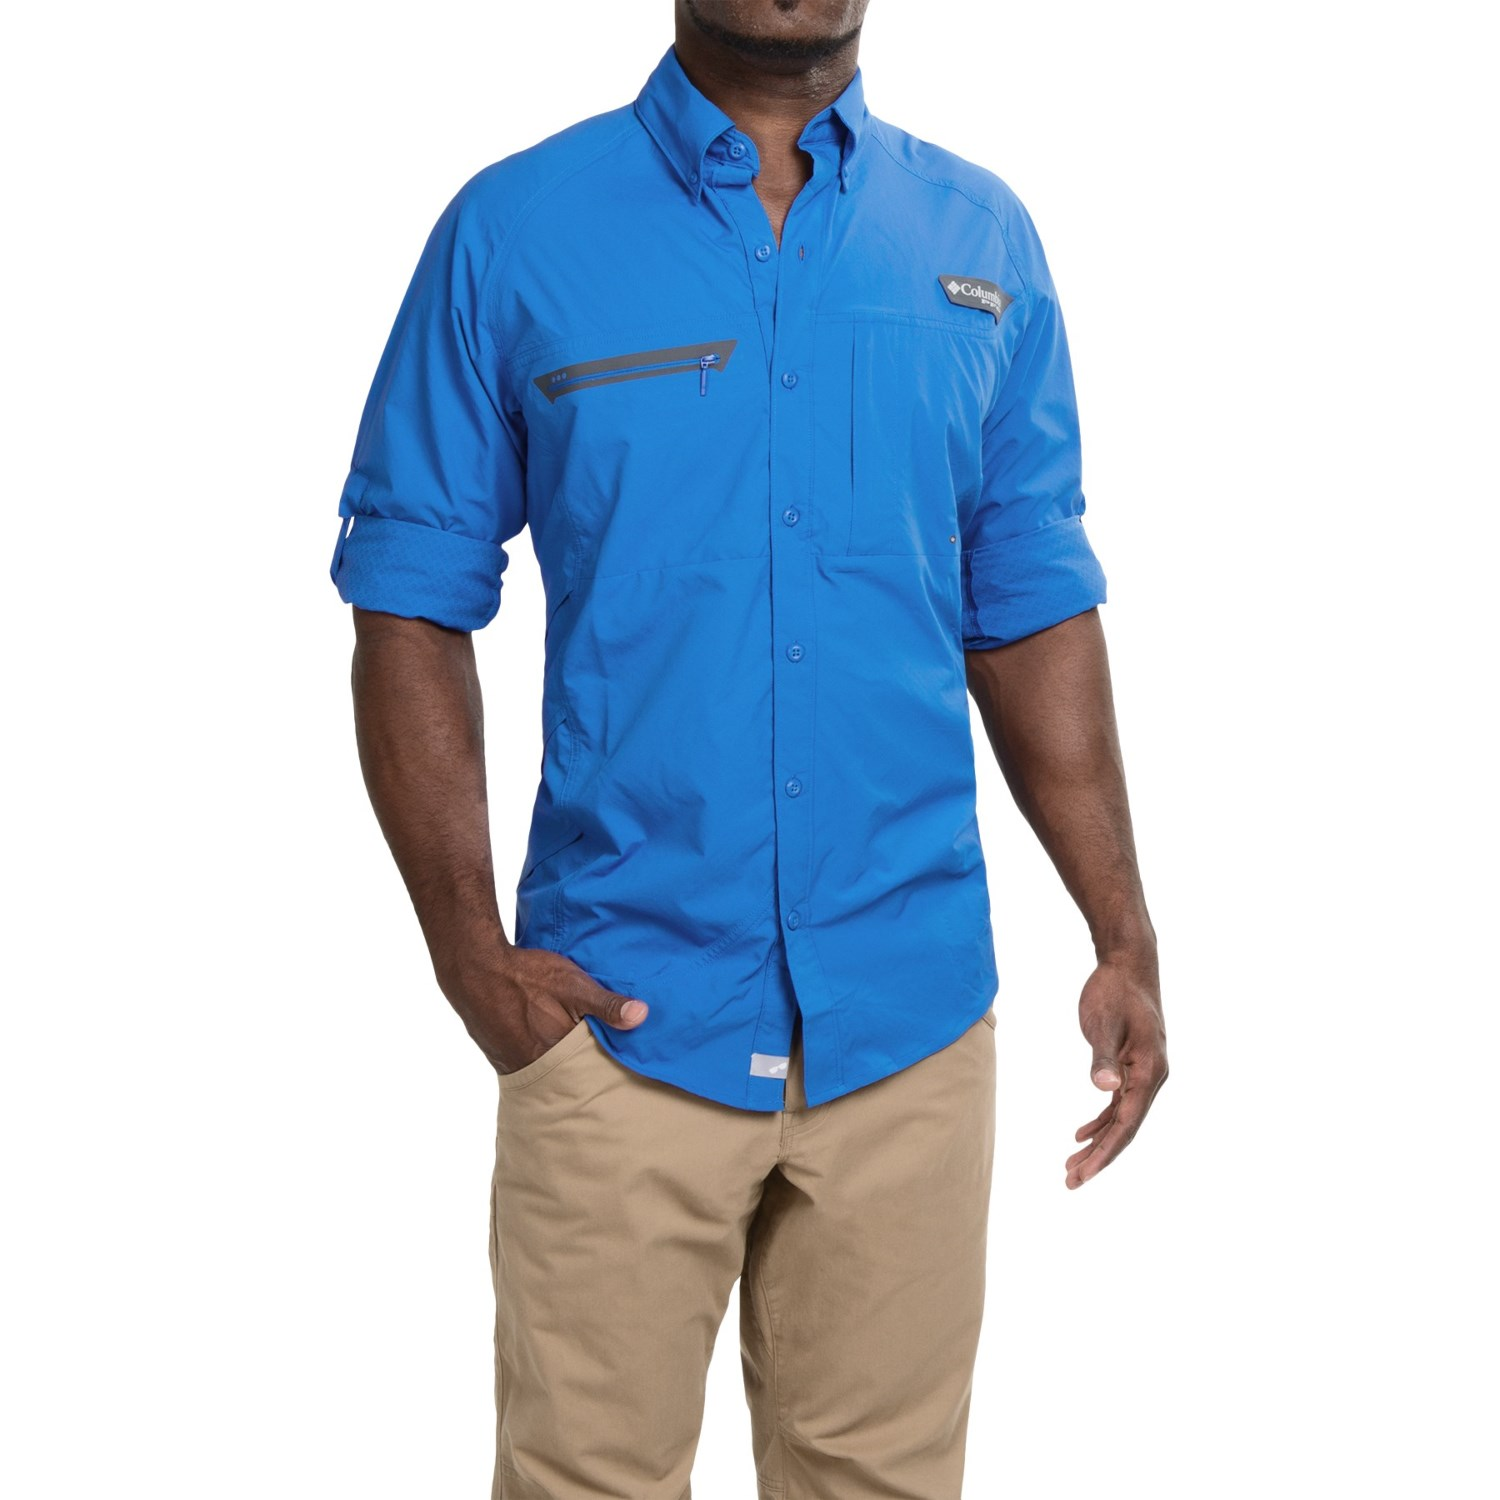 Columbia clothing online